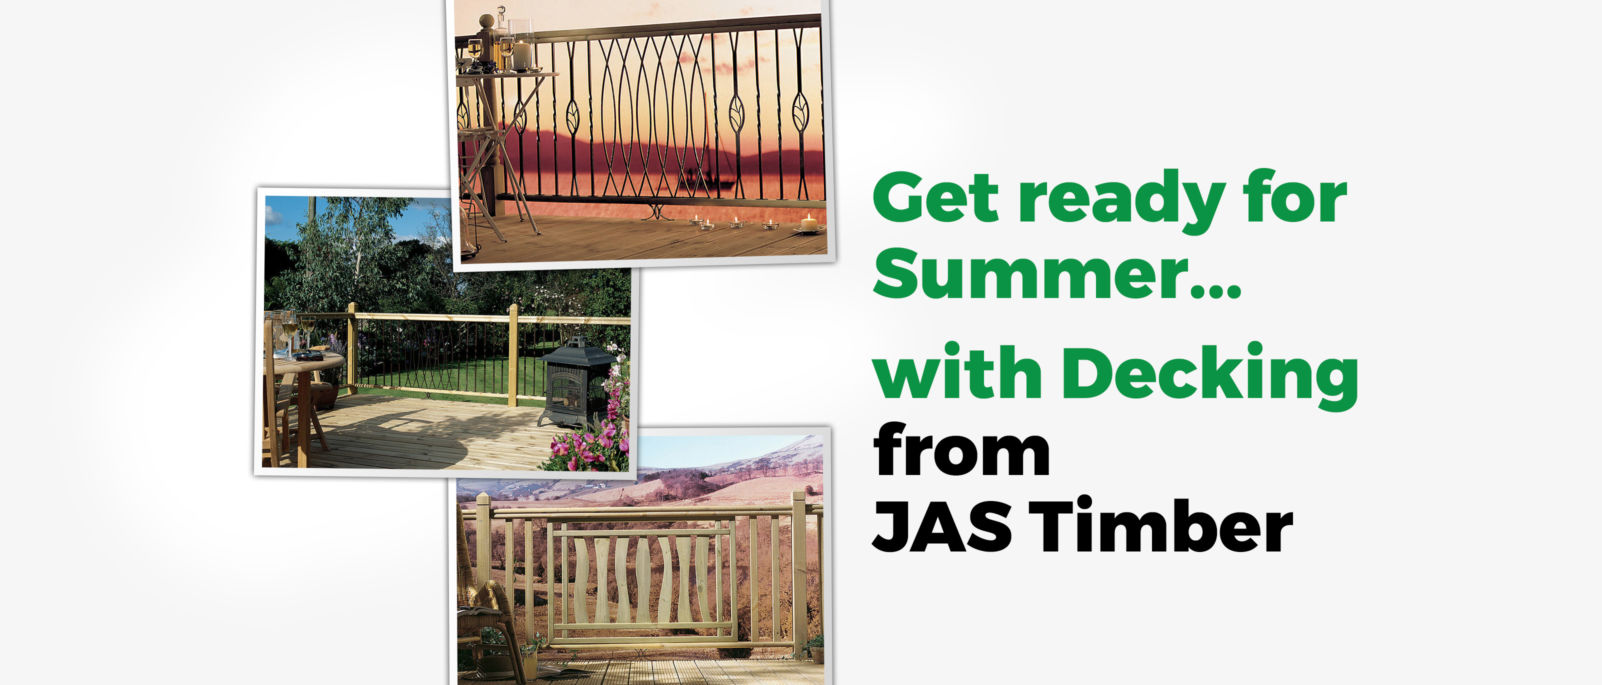 Jas timber timber decking deck newels spindles for Pre made timber decking